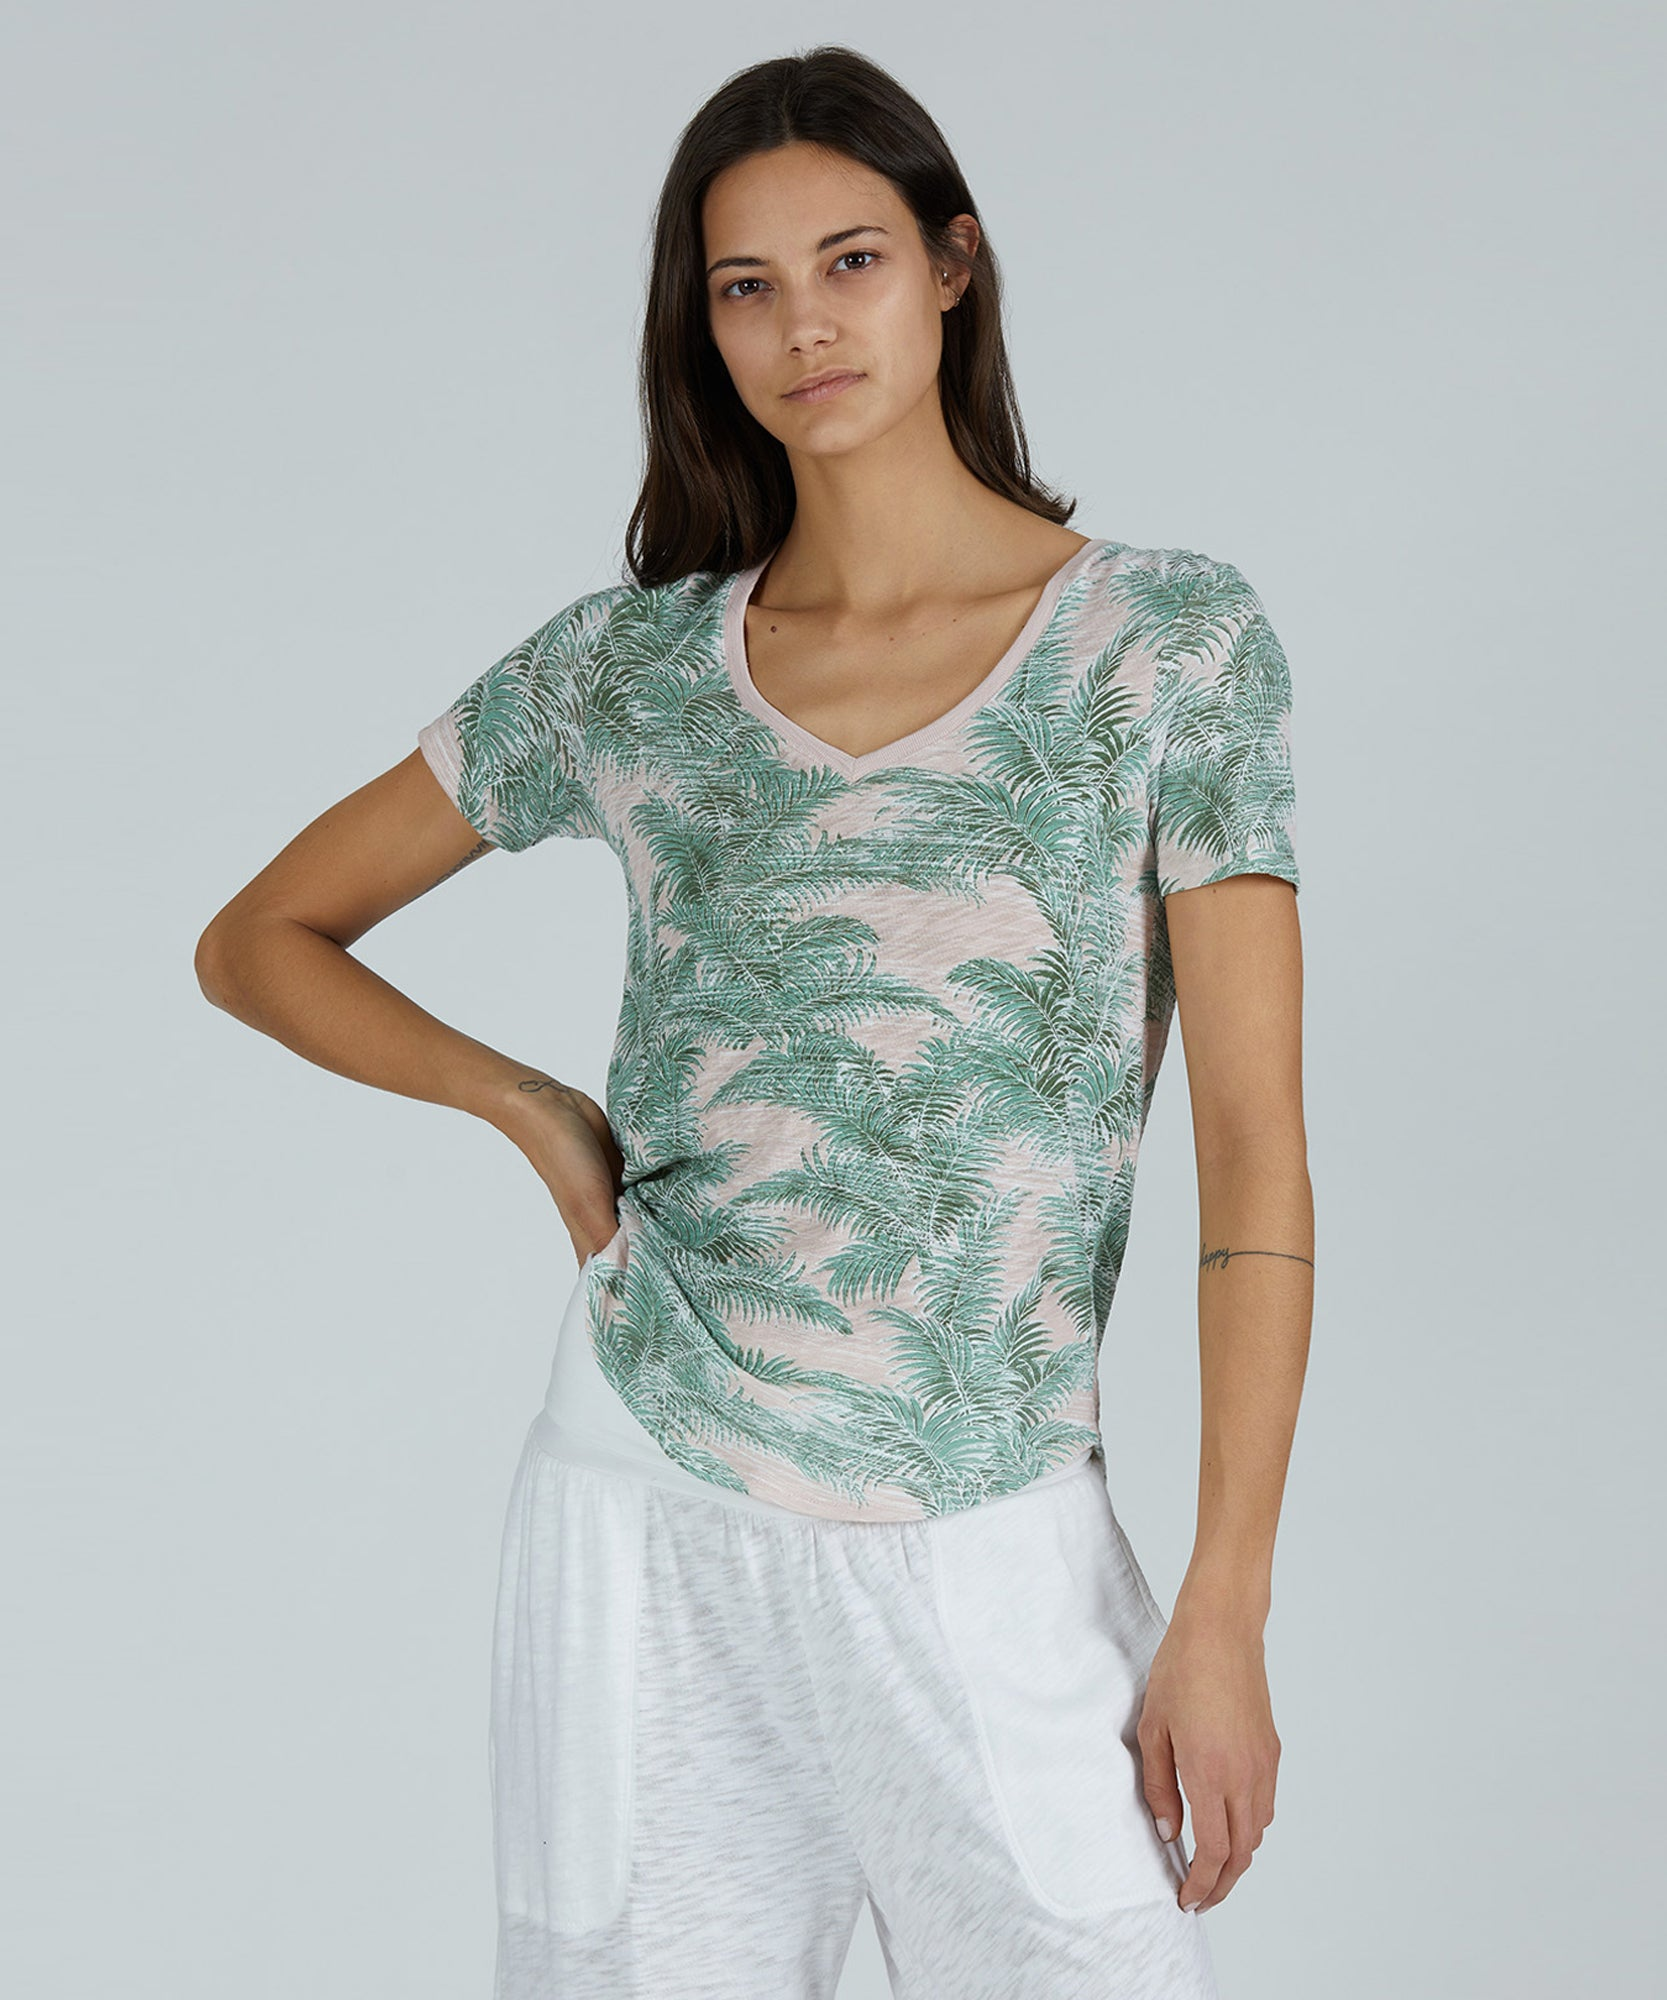 Women's T-Shirt by ATM Anthony Thomas Melillo